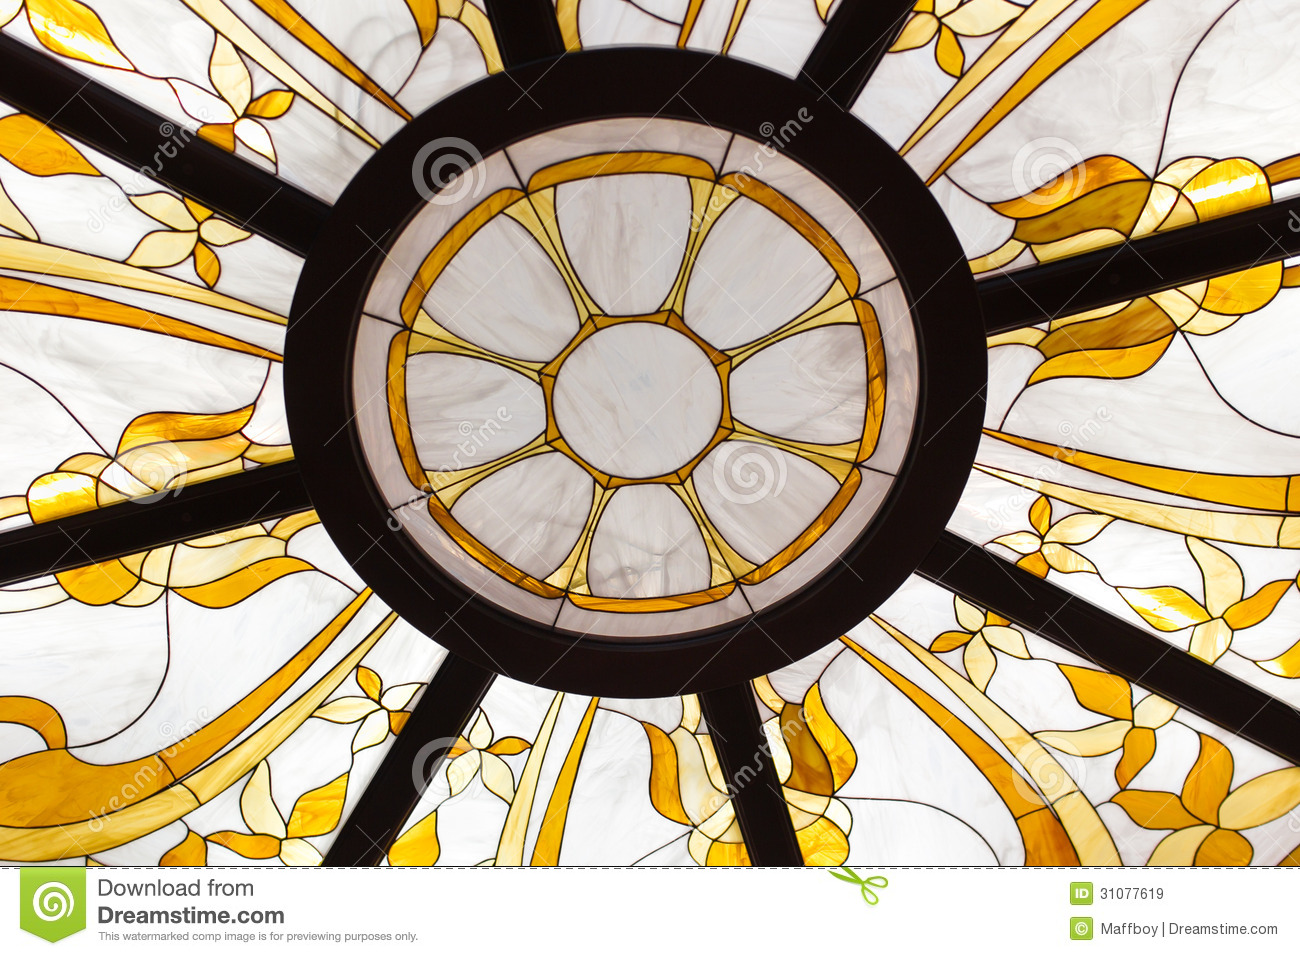 Royalty Free Stock Images: Stained glass ceiling